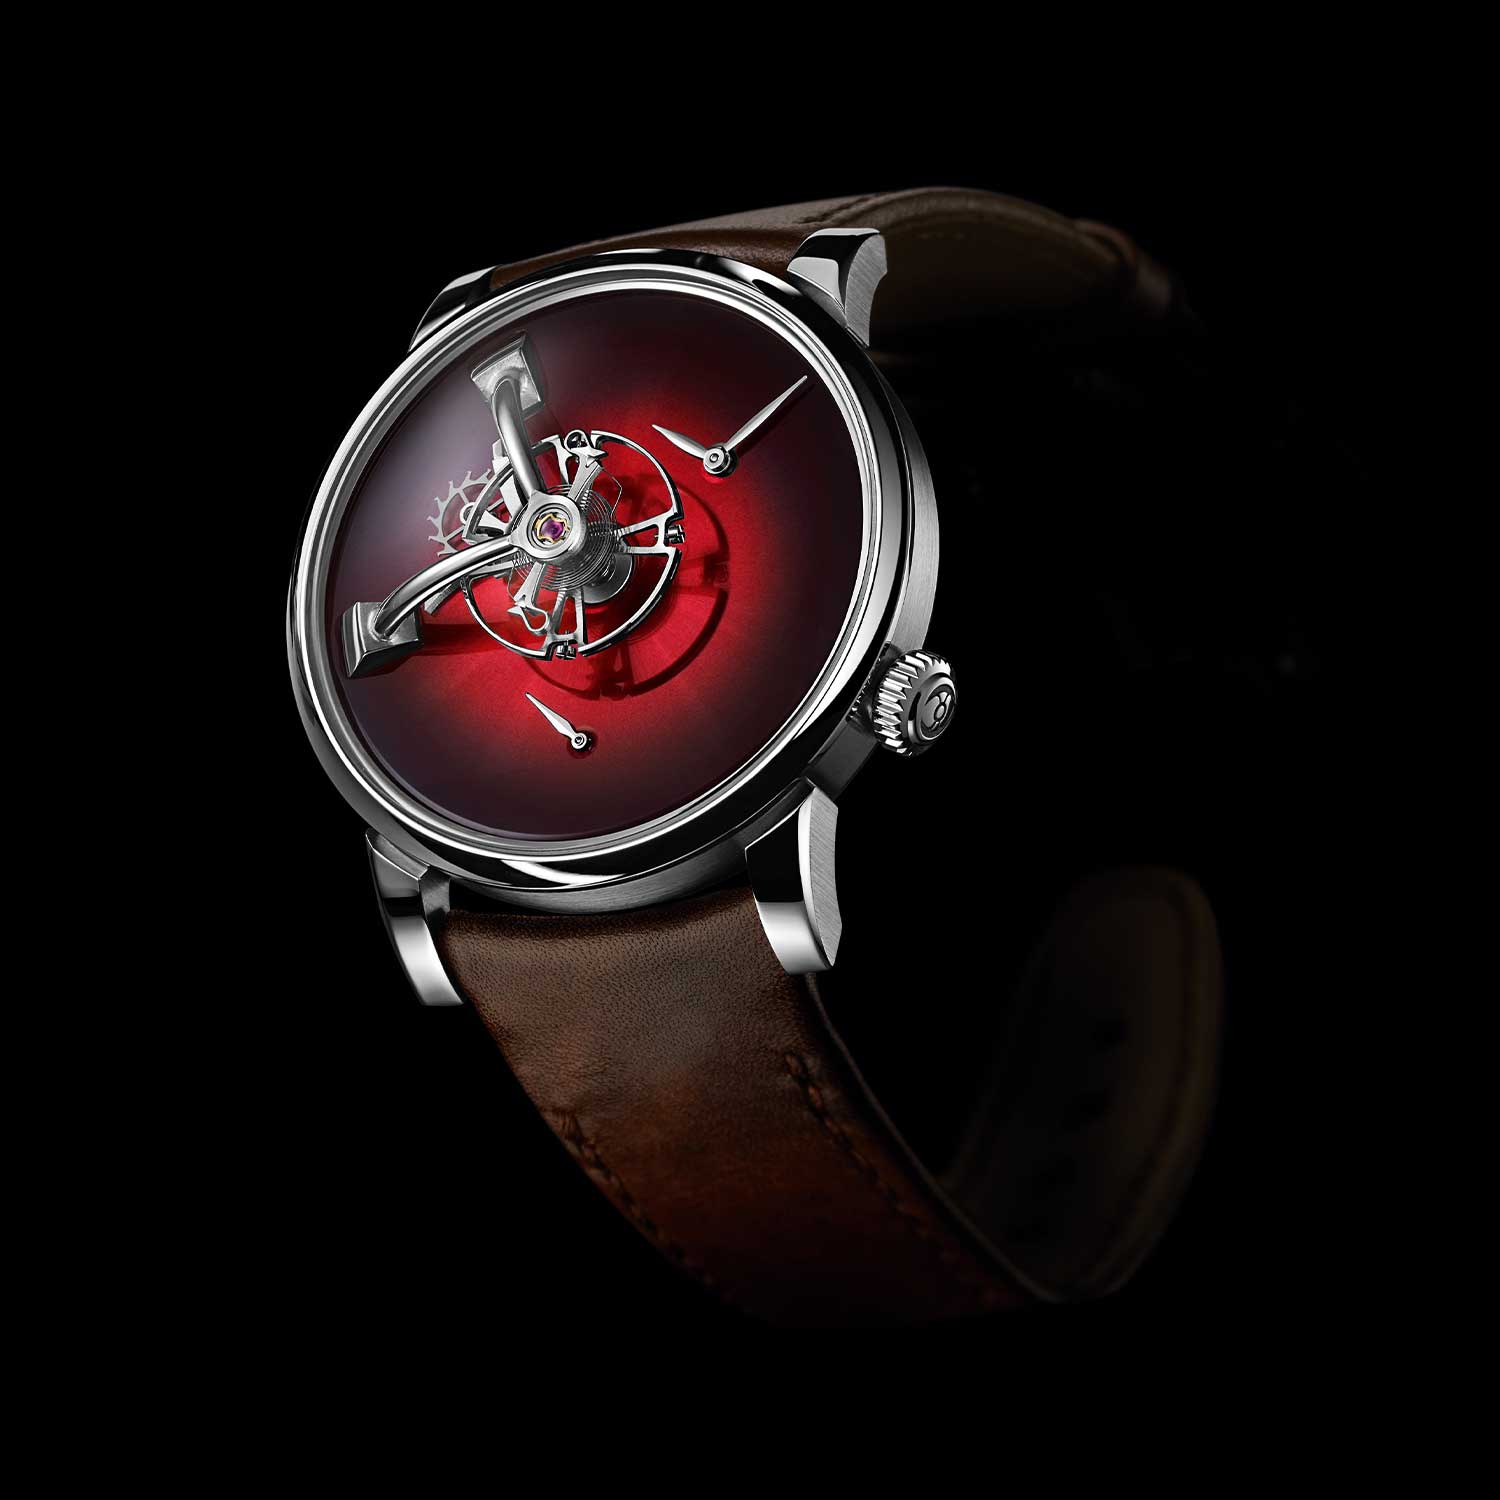 MB&F × H. Moser LM101 in Red